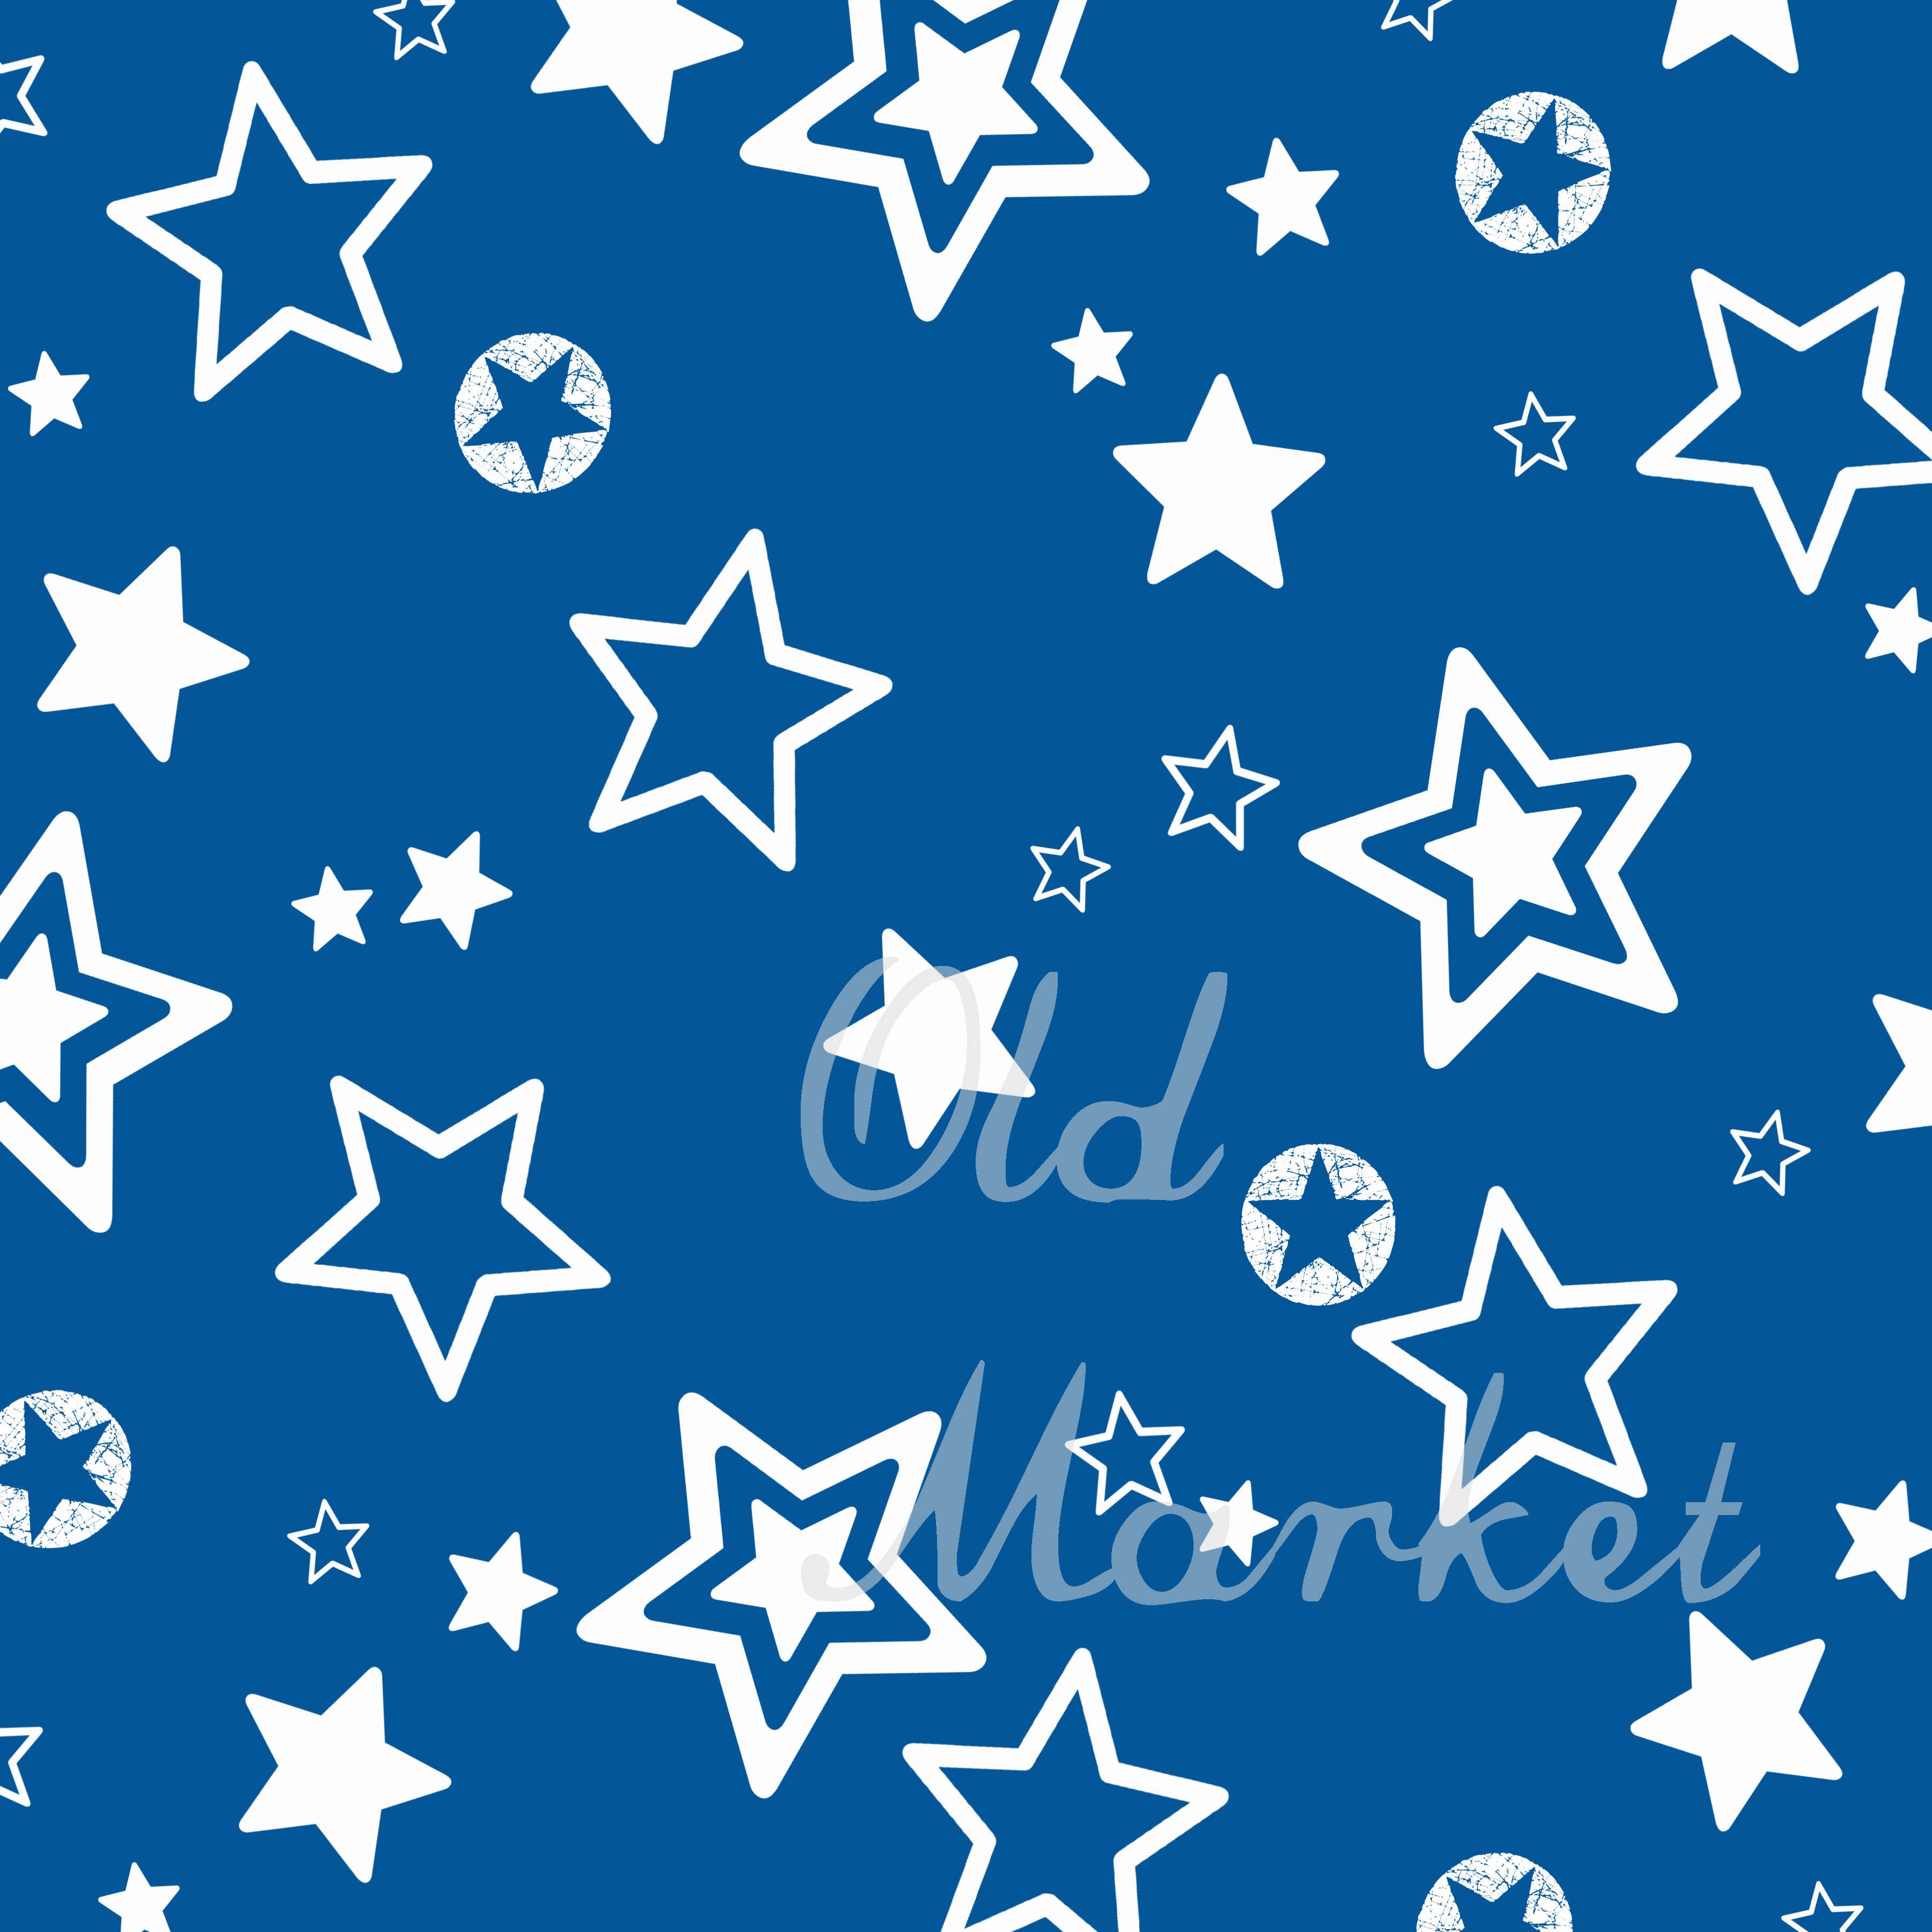 Seeing Stars Digital Paper Graphic Backgrounds By oldmarketdesigns - Image 2